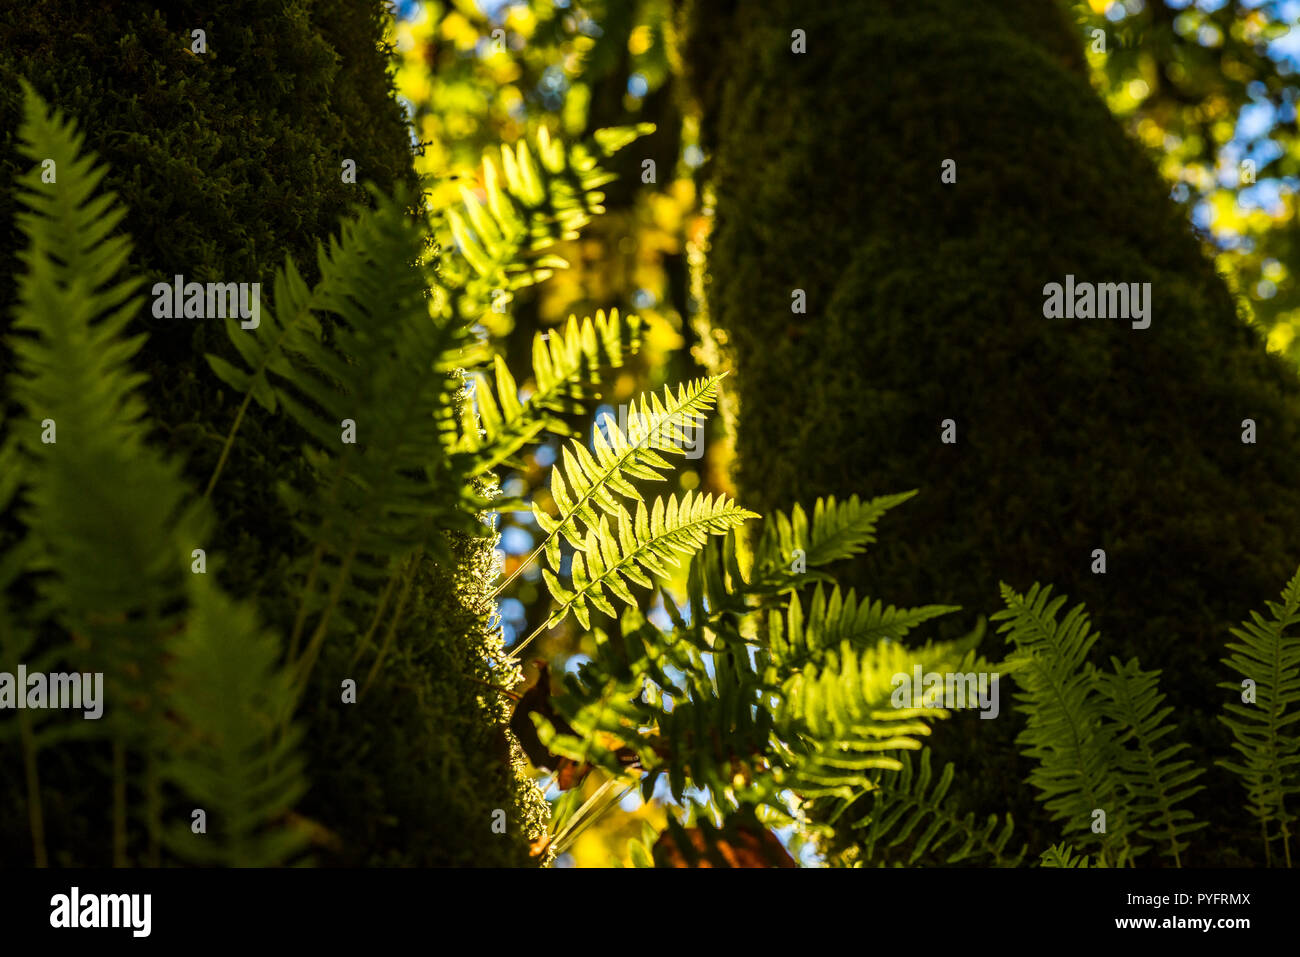 Polypodium glycyrrhiza, Licorice ferns on Big leafed Maple trunk, Tynehead Regional Park, Surrey, British Columbia, Canada. Stock Photo